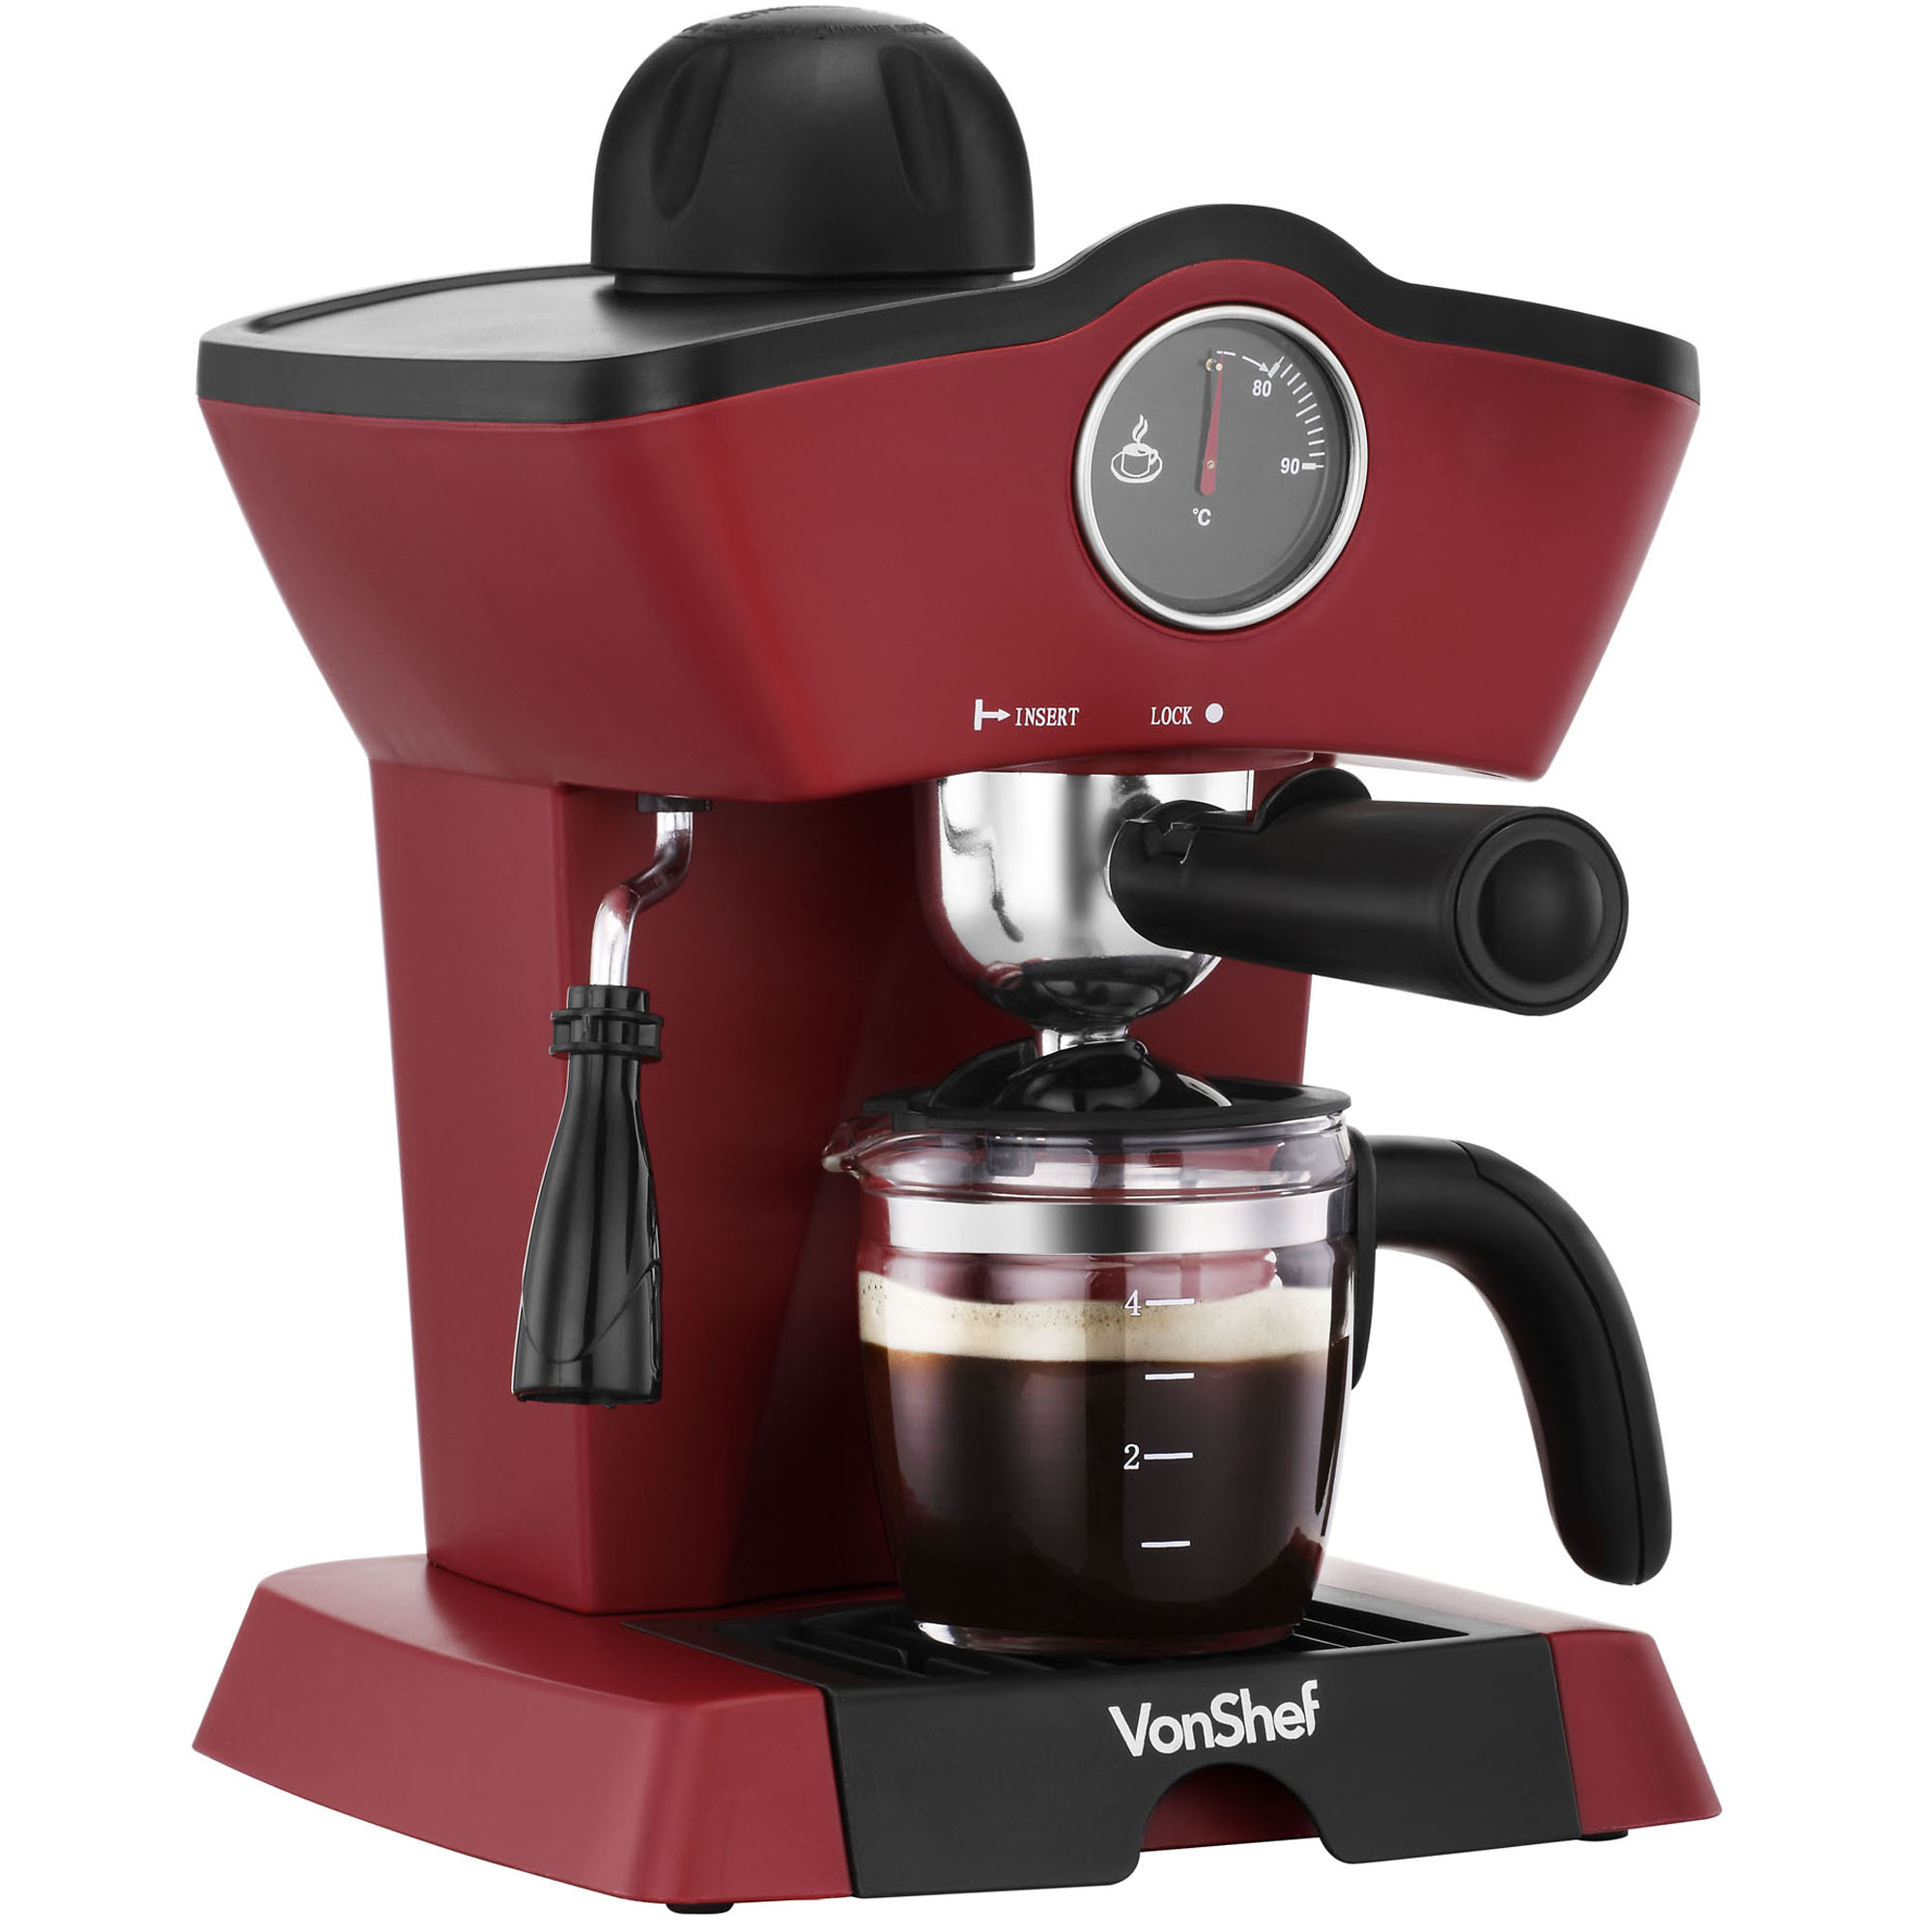 Coffee Maker Latte Reviews : VonShef 4 Bar Espresso Cappuccino Latte Barista Coffee Maker Machine - Red/Black eBay